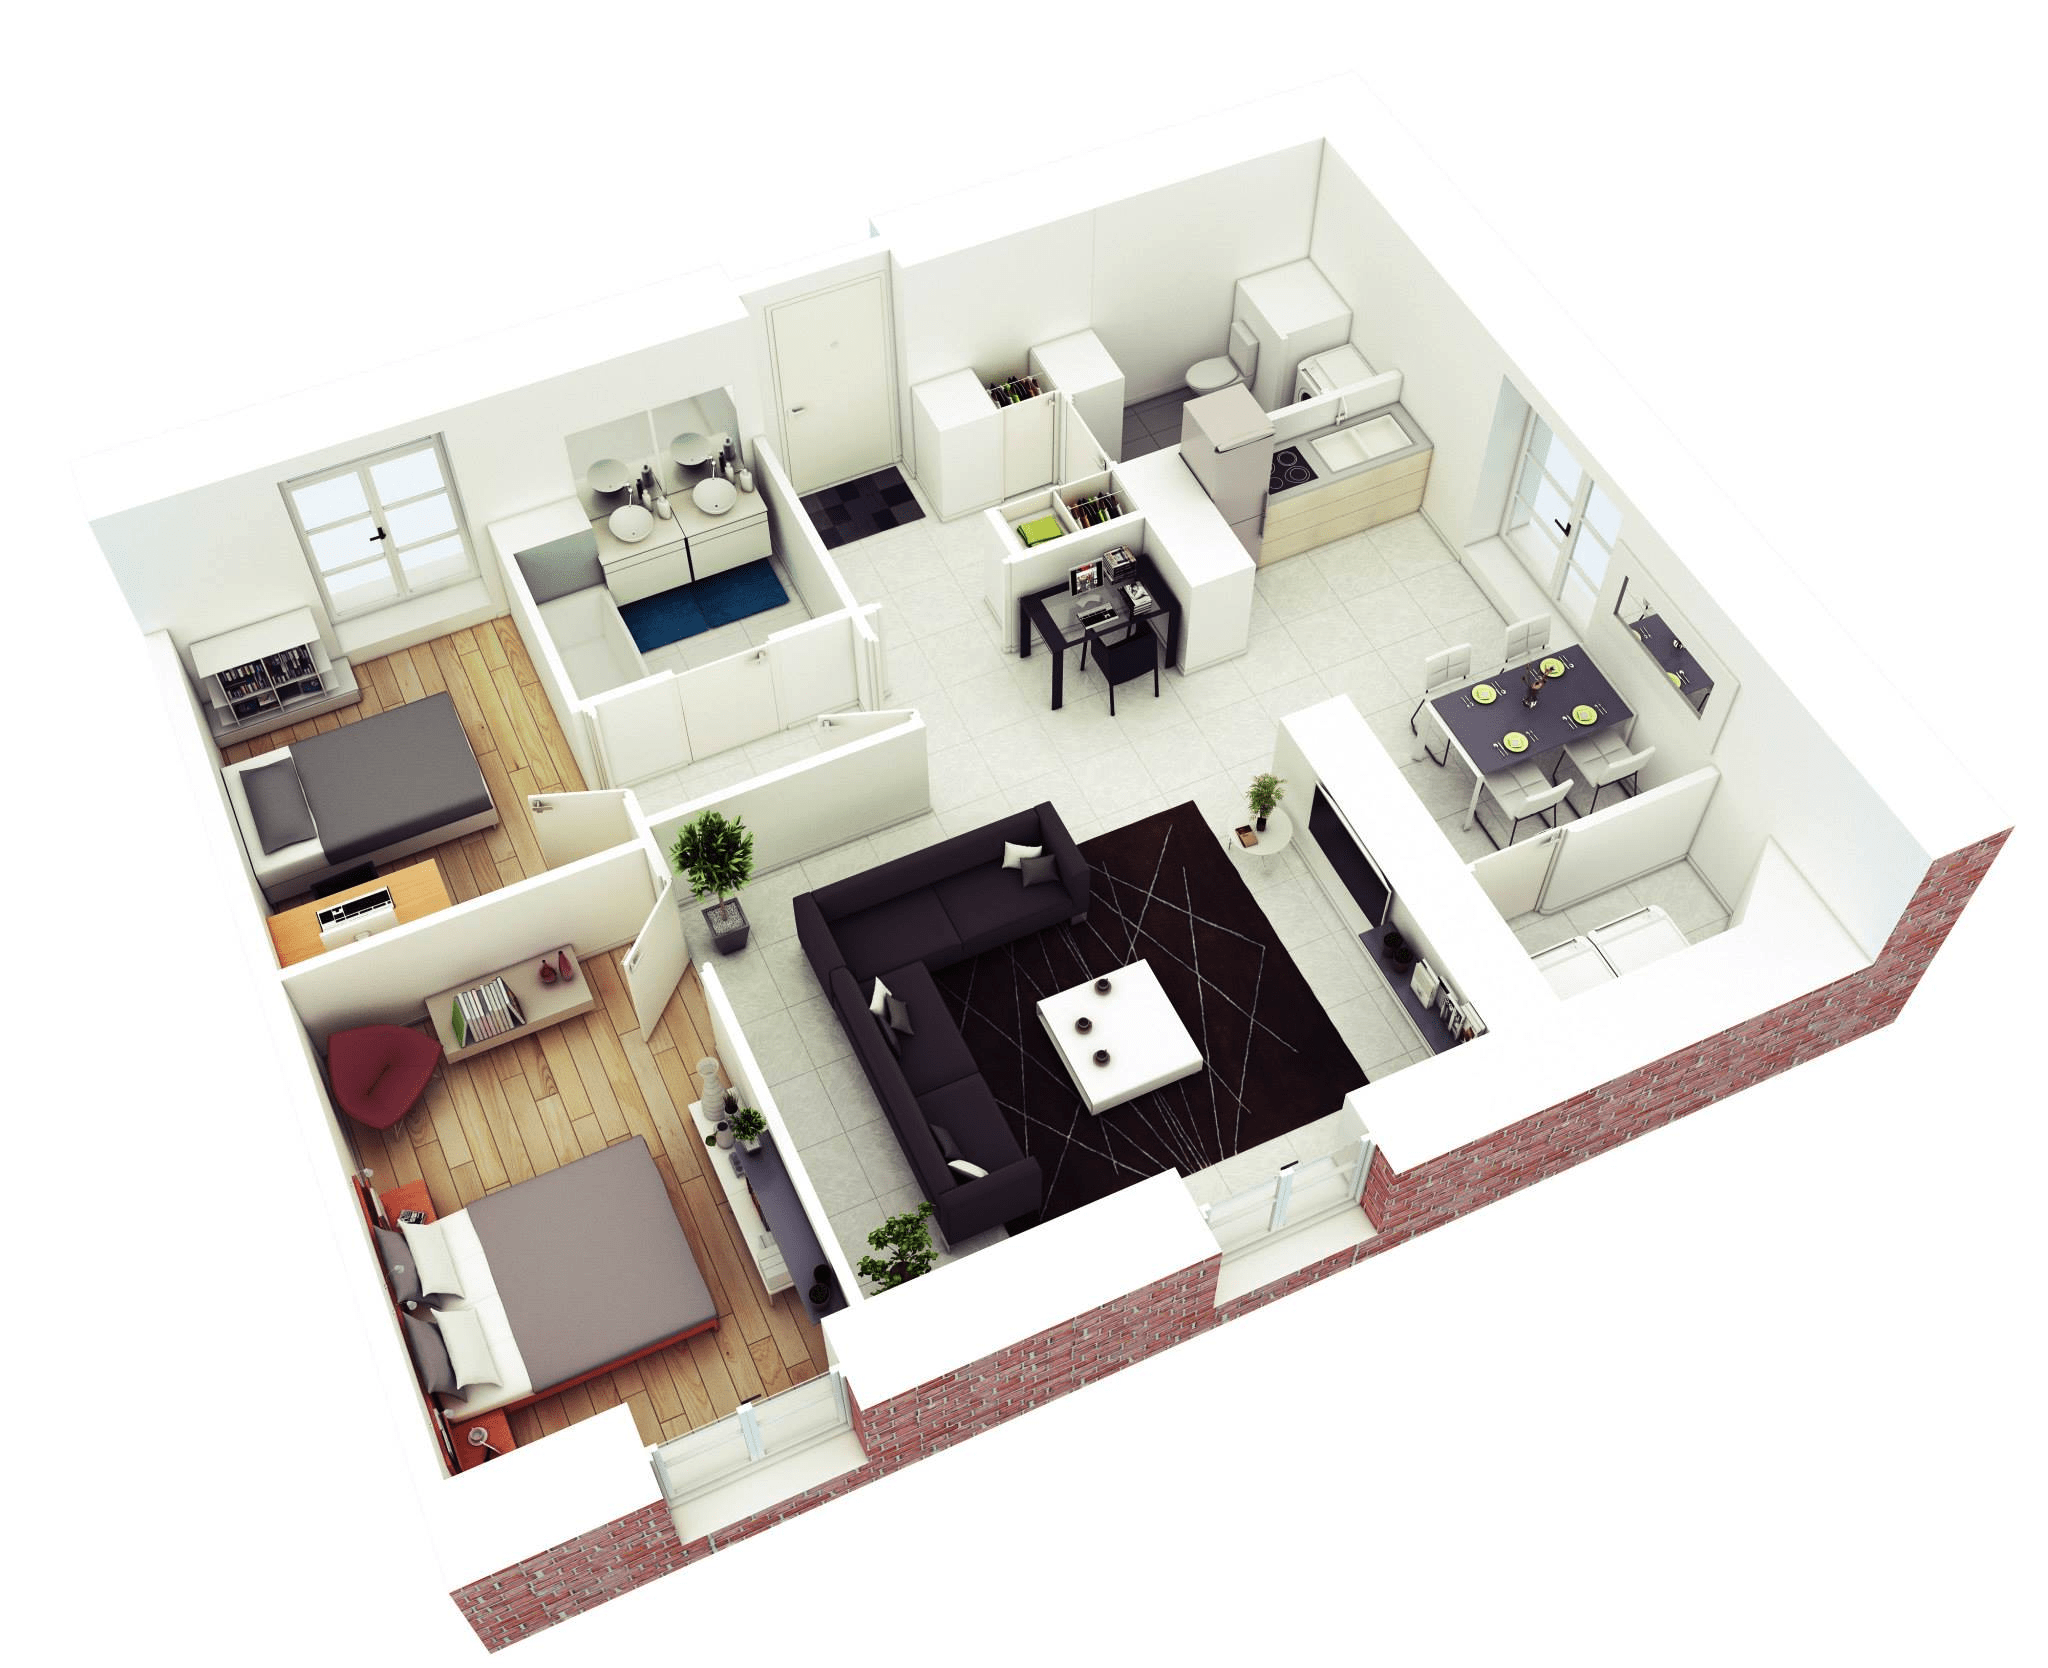 Minimalist 2 Bedroom Simple House Floor Plans 3D Layout (Image 11 of 17)